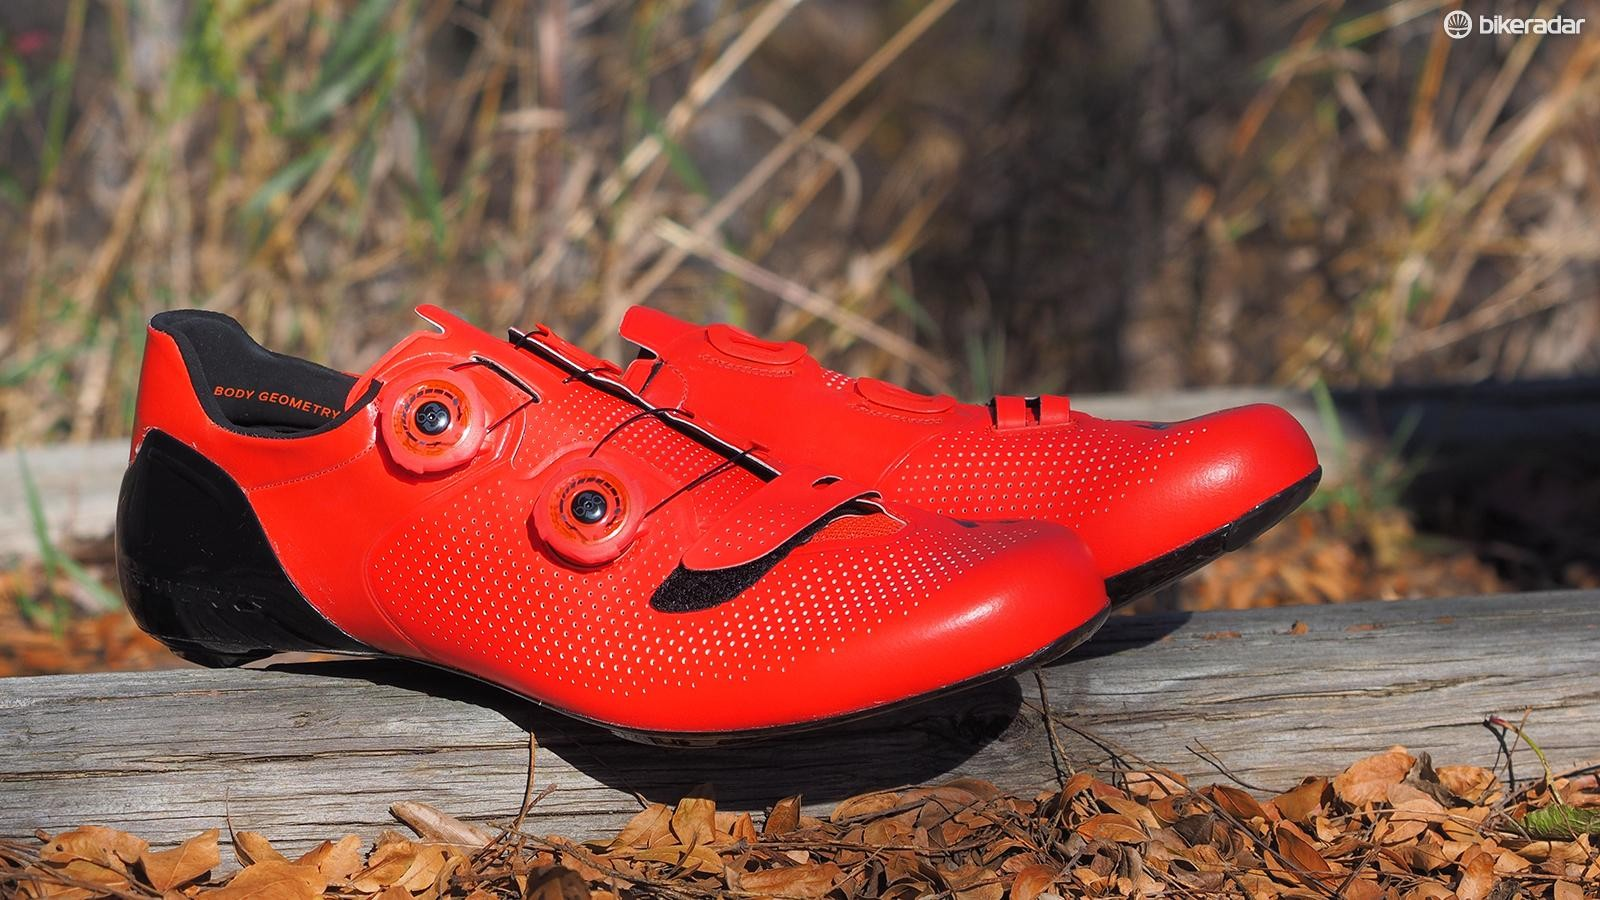 Specialized's new S-Works 6 road shoes are incredibly light for a dual-Boa shoe but also remarkably supportive and comfortable